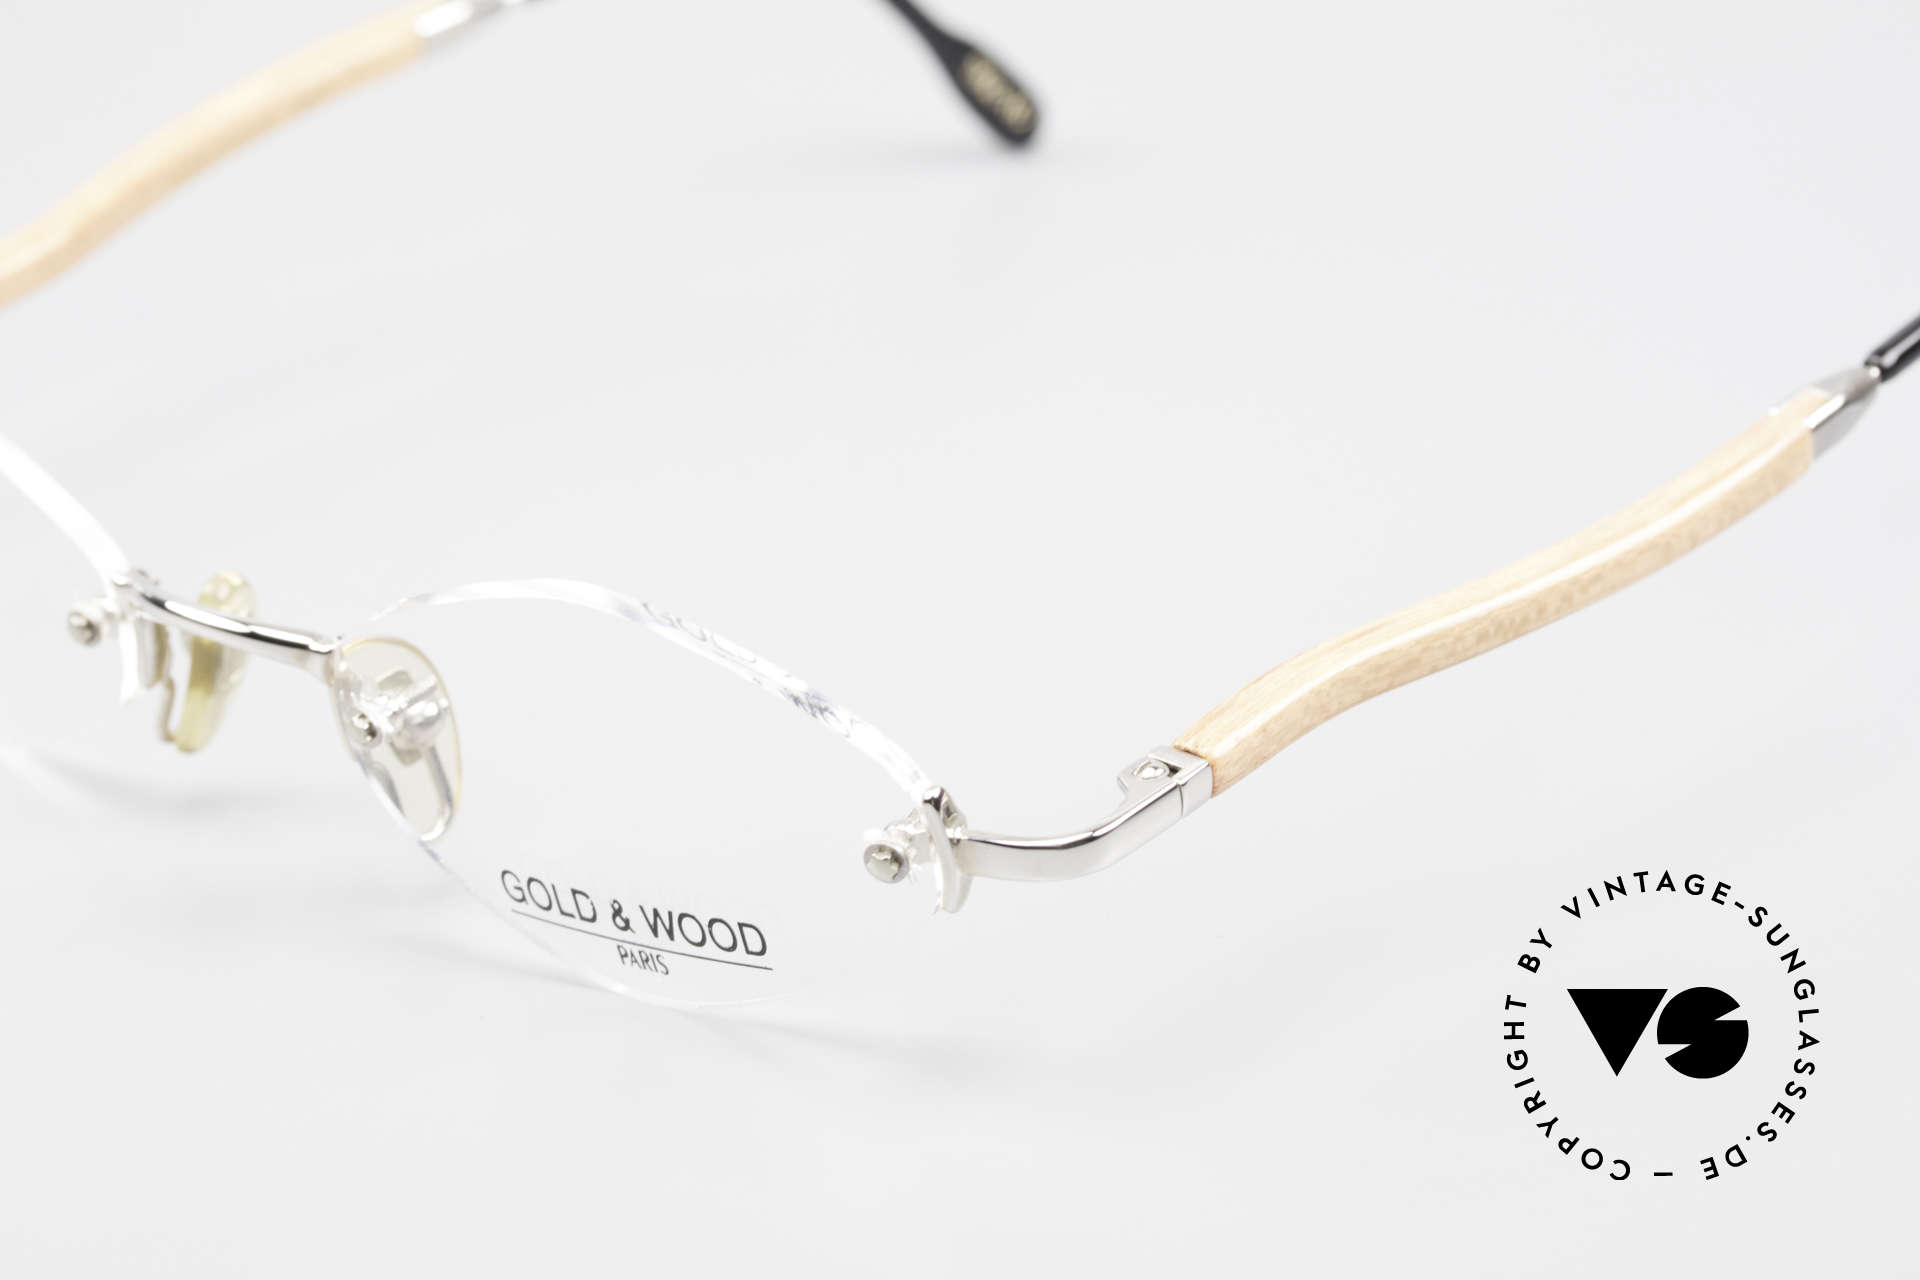 Gold & Wood S02 Luxury Rimless Spectacles, unworn rarity (for all lovers of quality), unique, Made for Men and Women